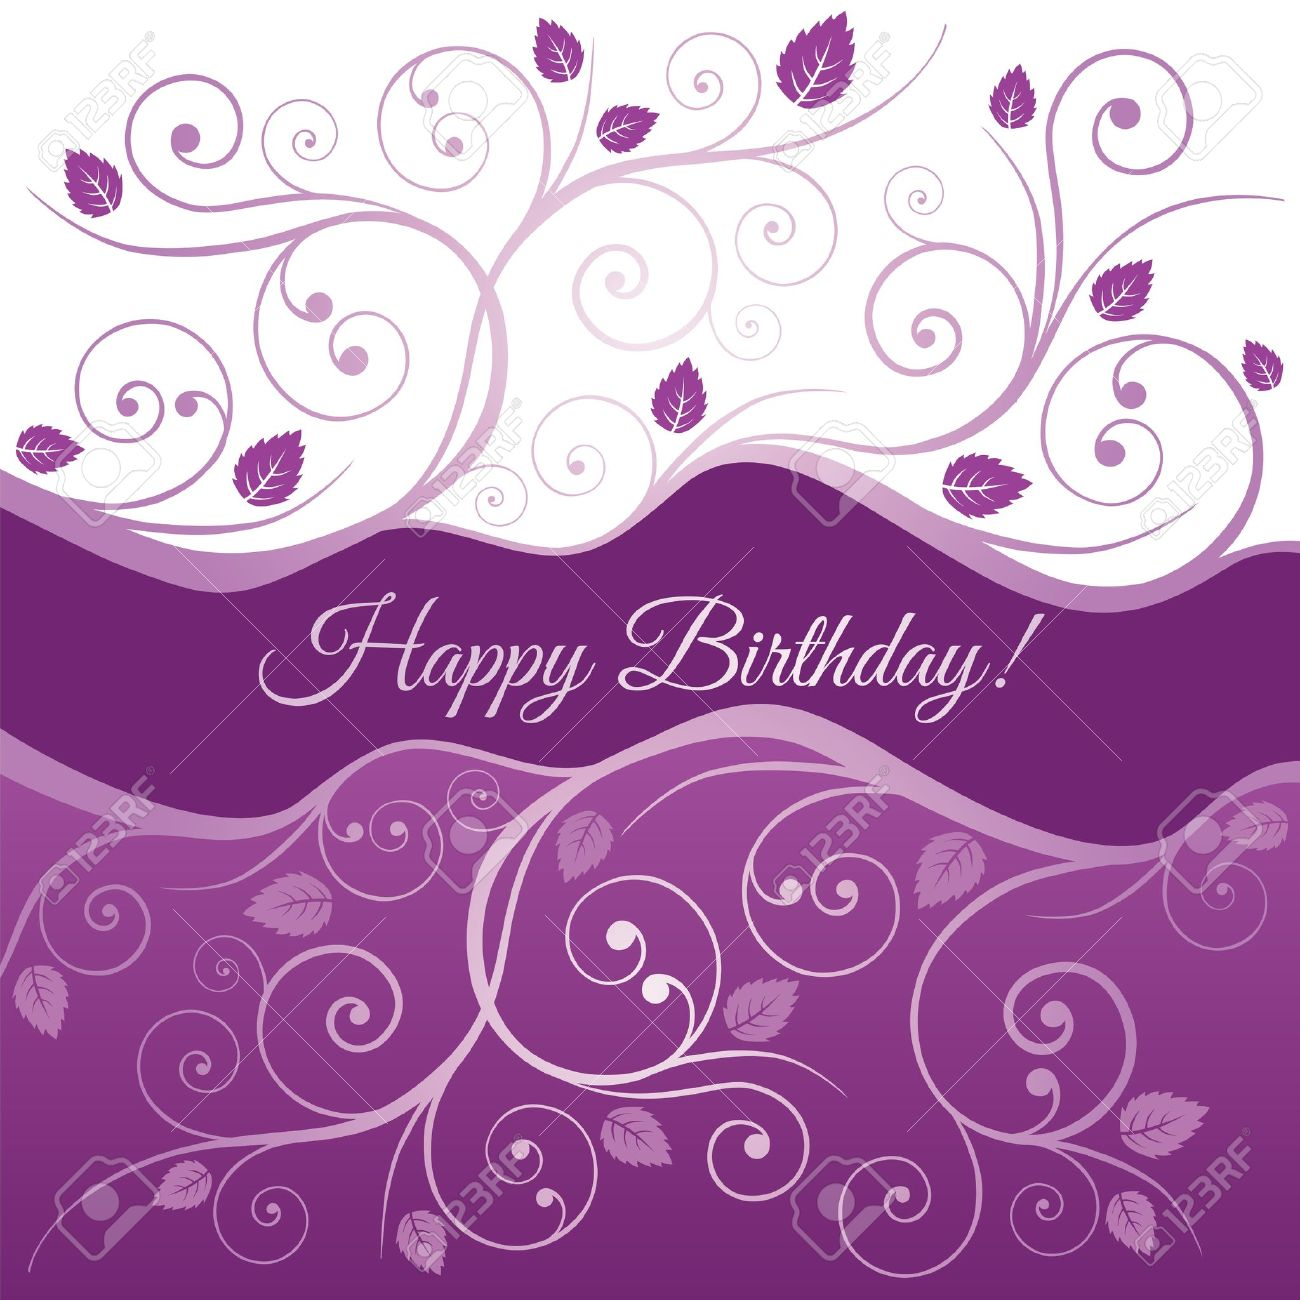 Happy birthday card with pink and purple swirls and leaves royalty happy birthday card with pink and purple swirls and leaves stock vector 20277149 dhlflorist Gallery